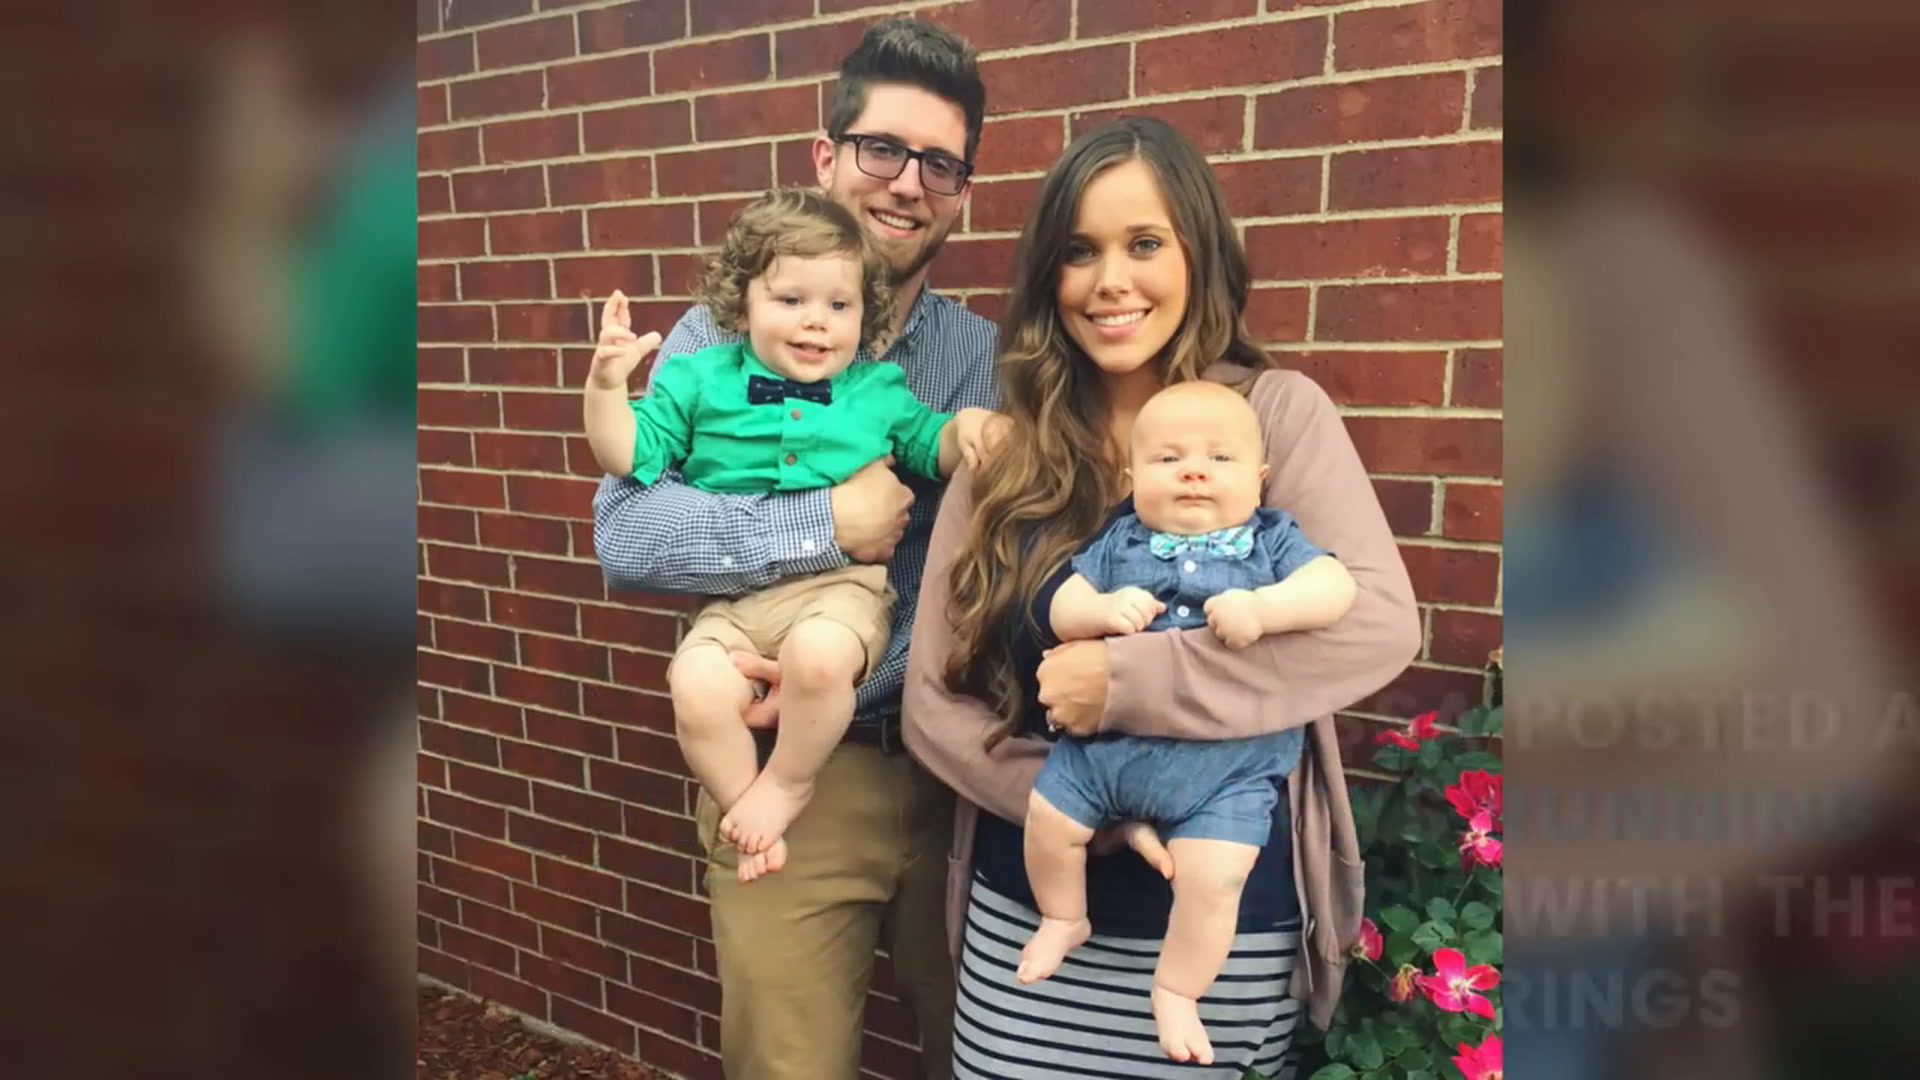 Jessa Seewald Shares a Sweet Video of Her Sons' New Favorite Game